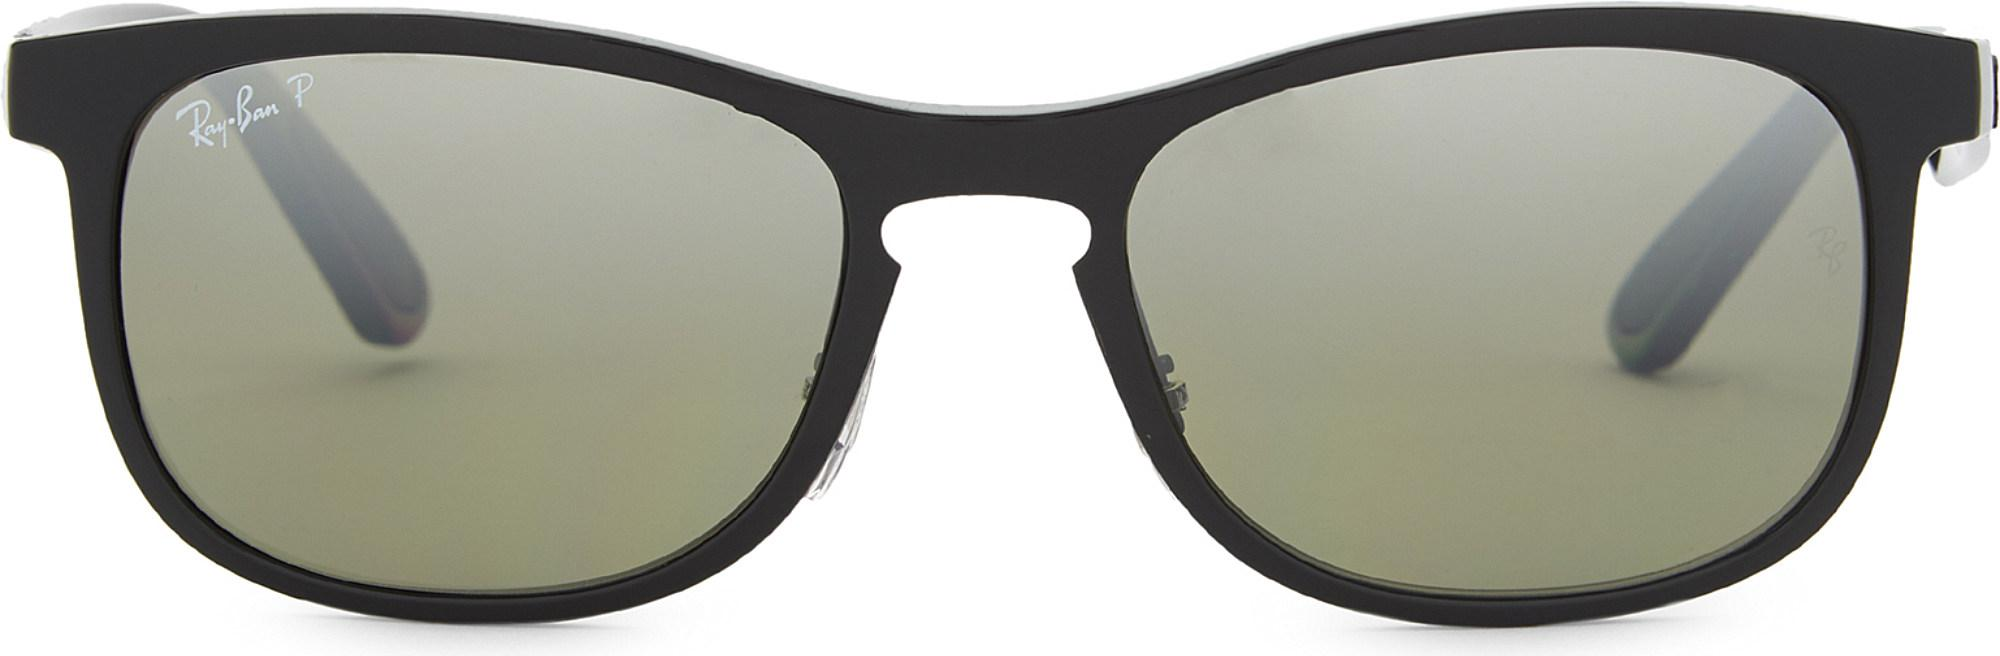 e02d55f6e3d Ray-Ban Rb4263 Chromance Square Sunglasses in Black for Men - Lyst